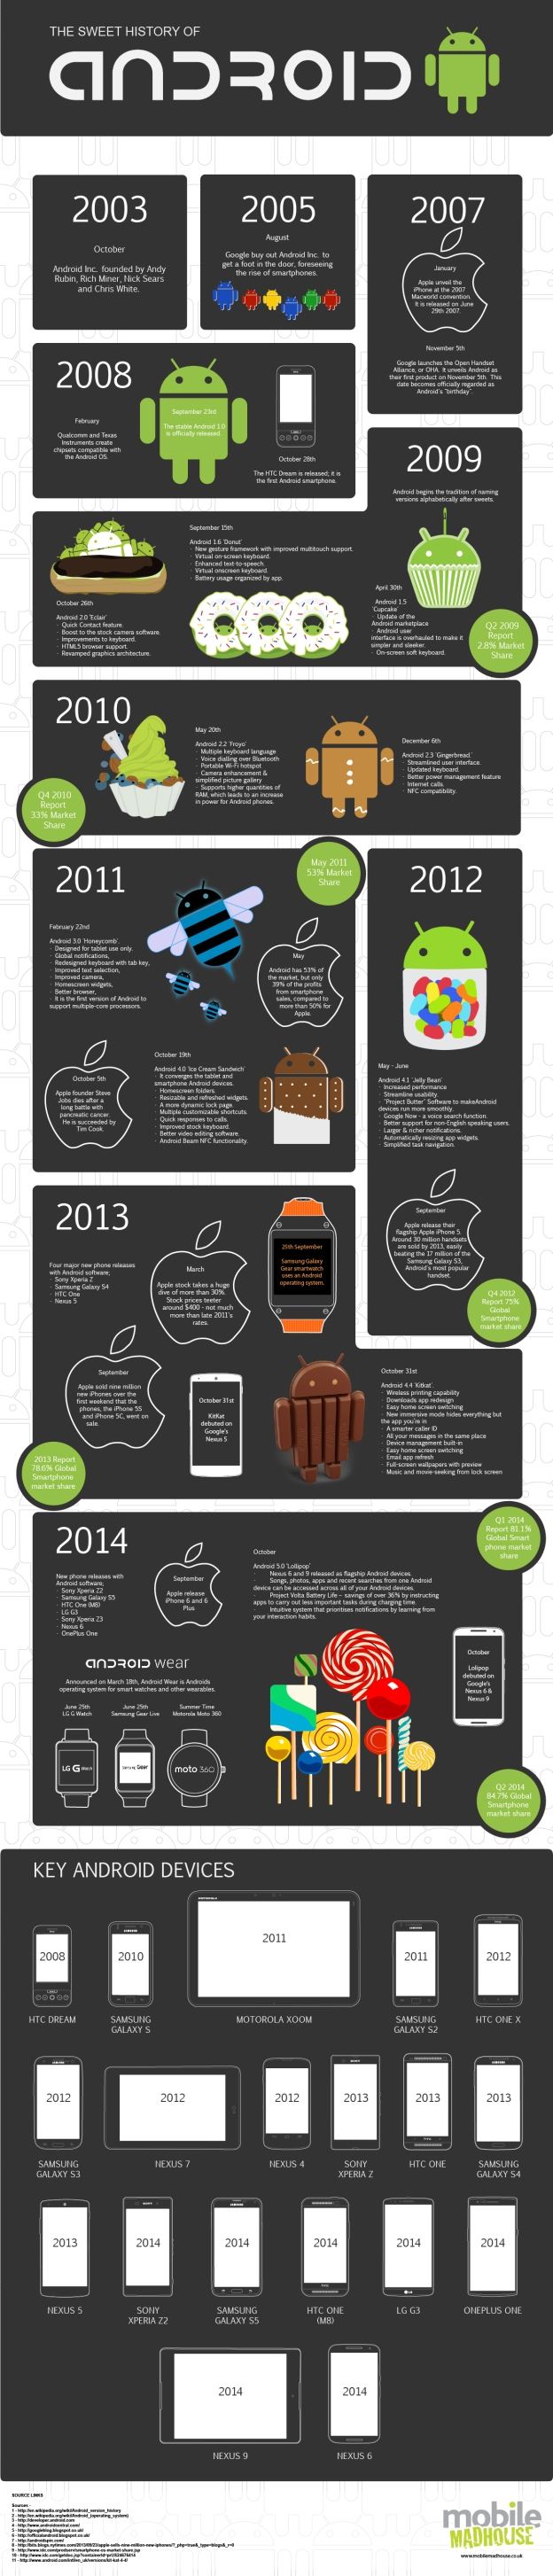 History of Android Infographic